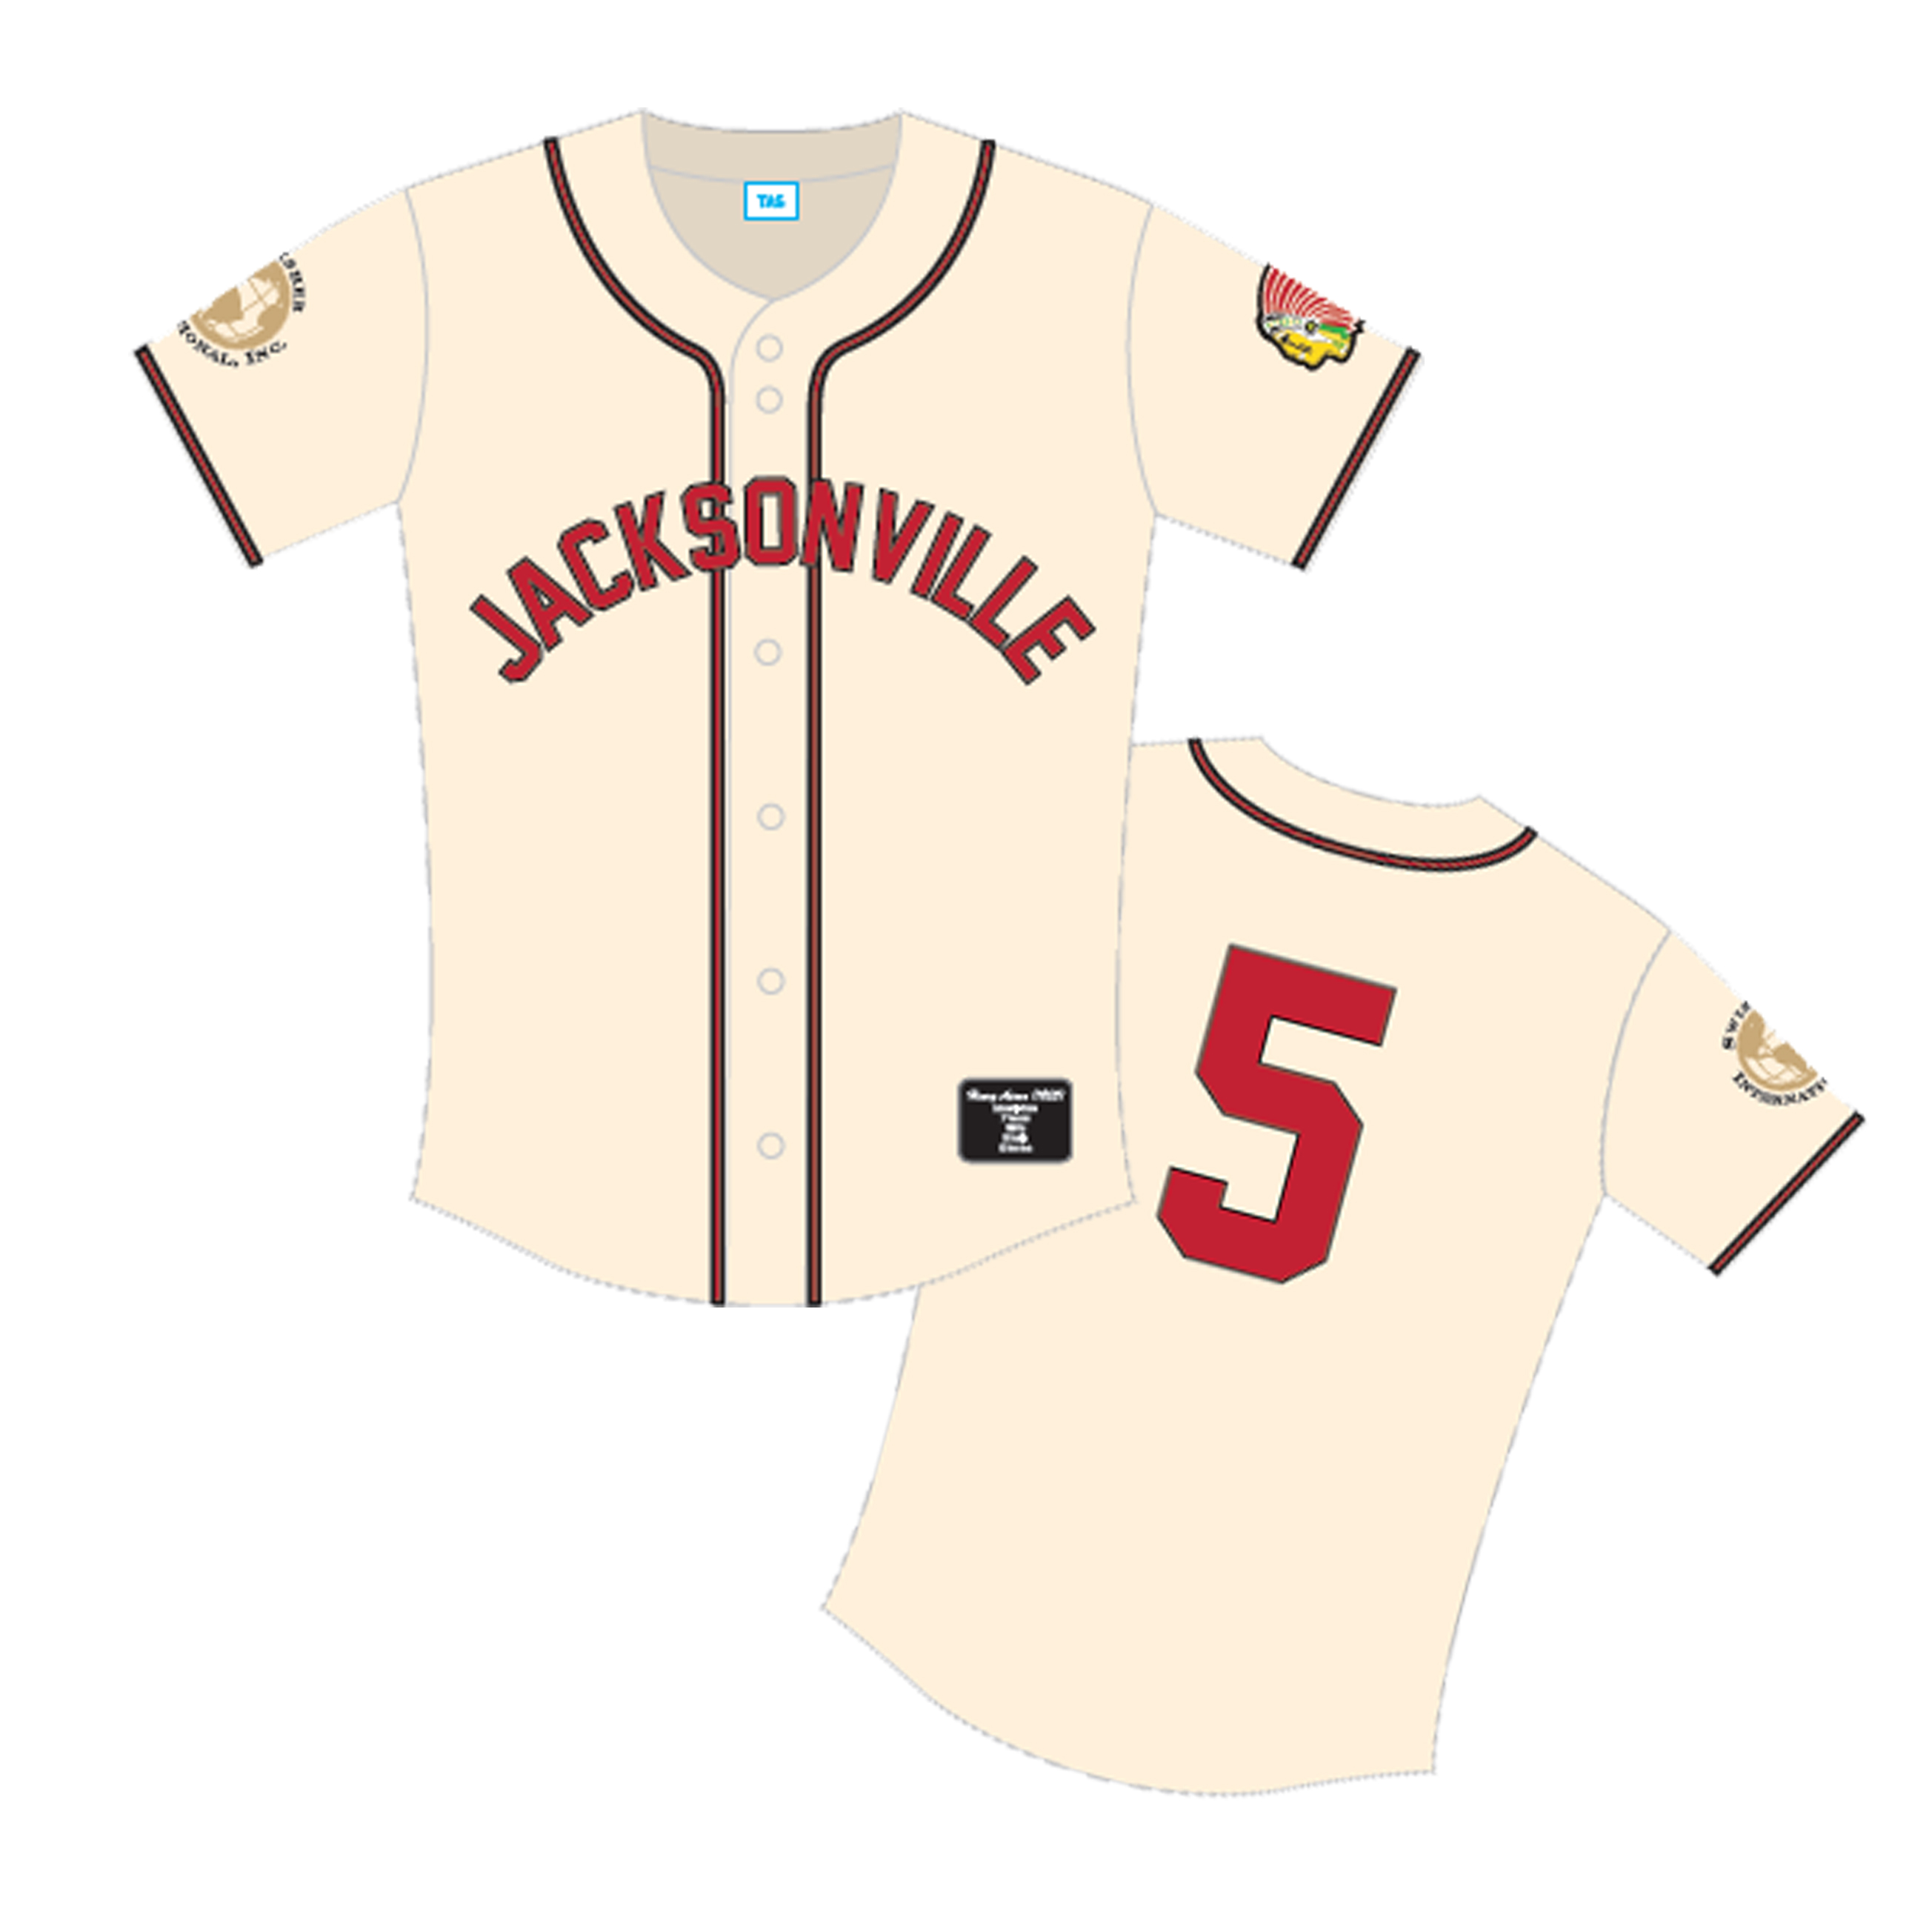 b7eab9b31 ... for a young Henry Aaron; as the first 2,000 fans through the gates will  received a replica Jacksonville Braves, Henry Aaron, number 5 baseball  jersey!